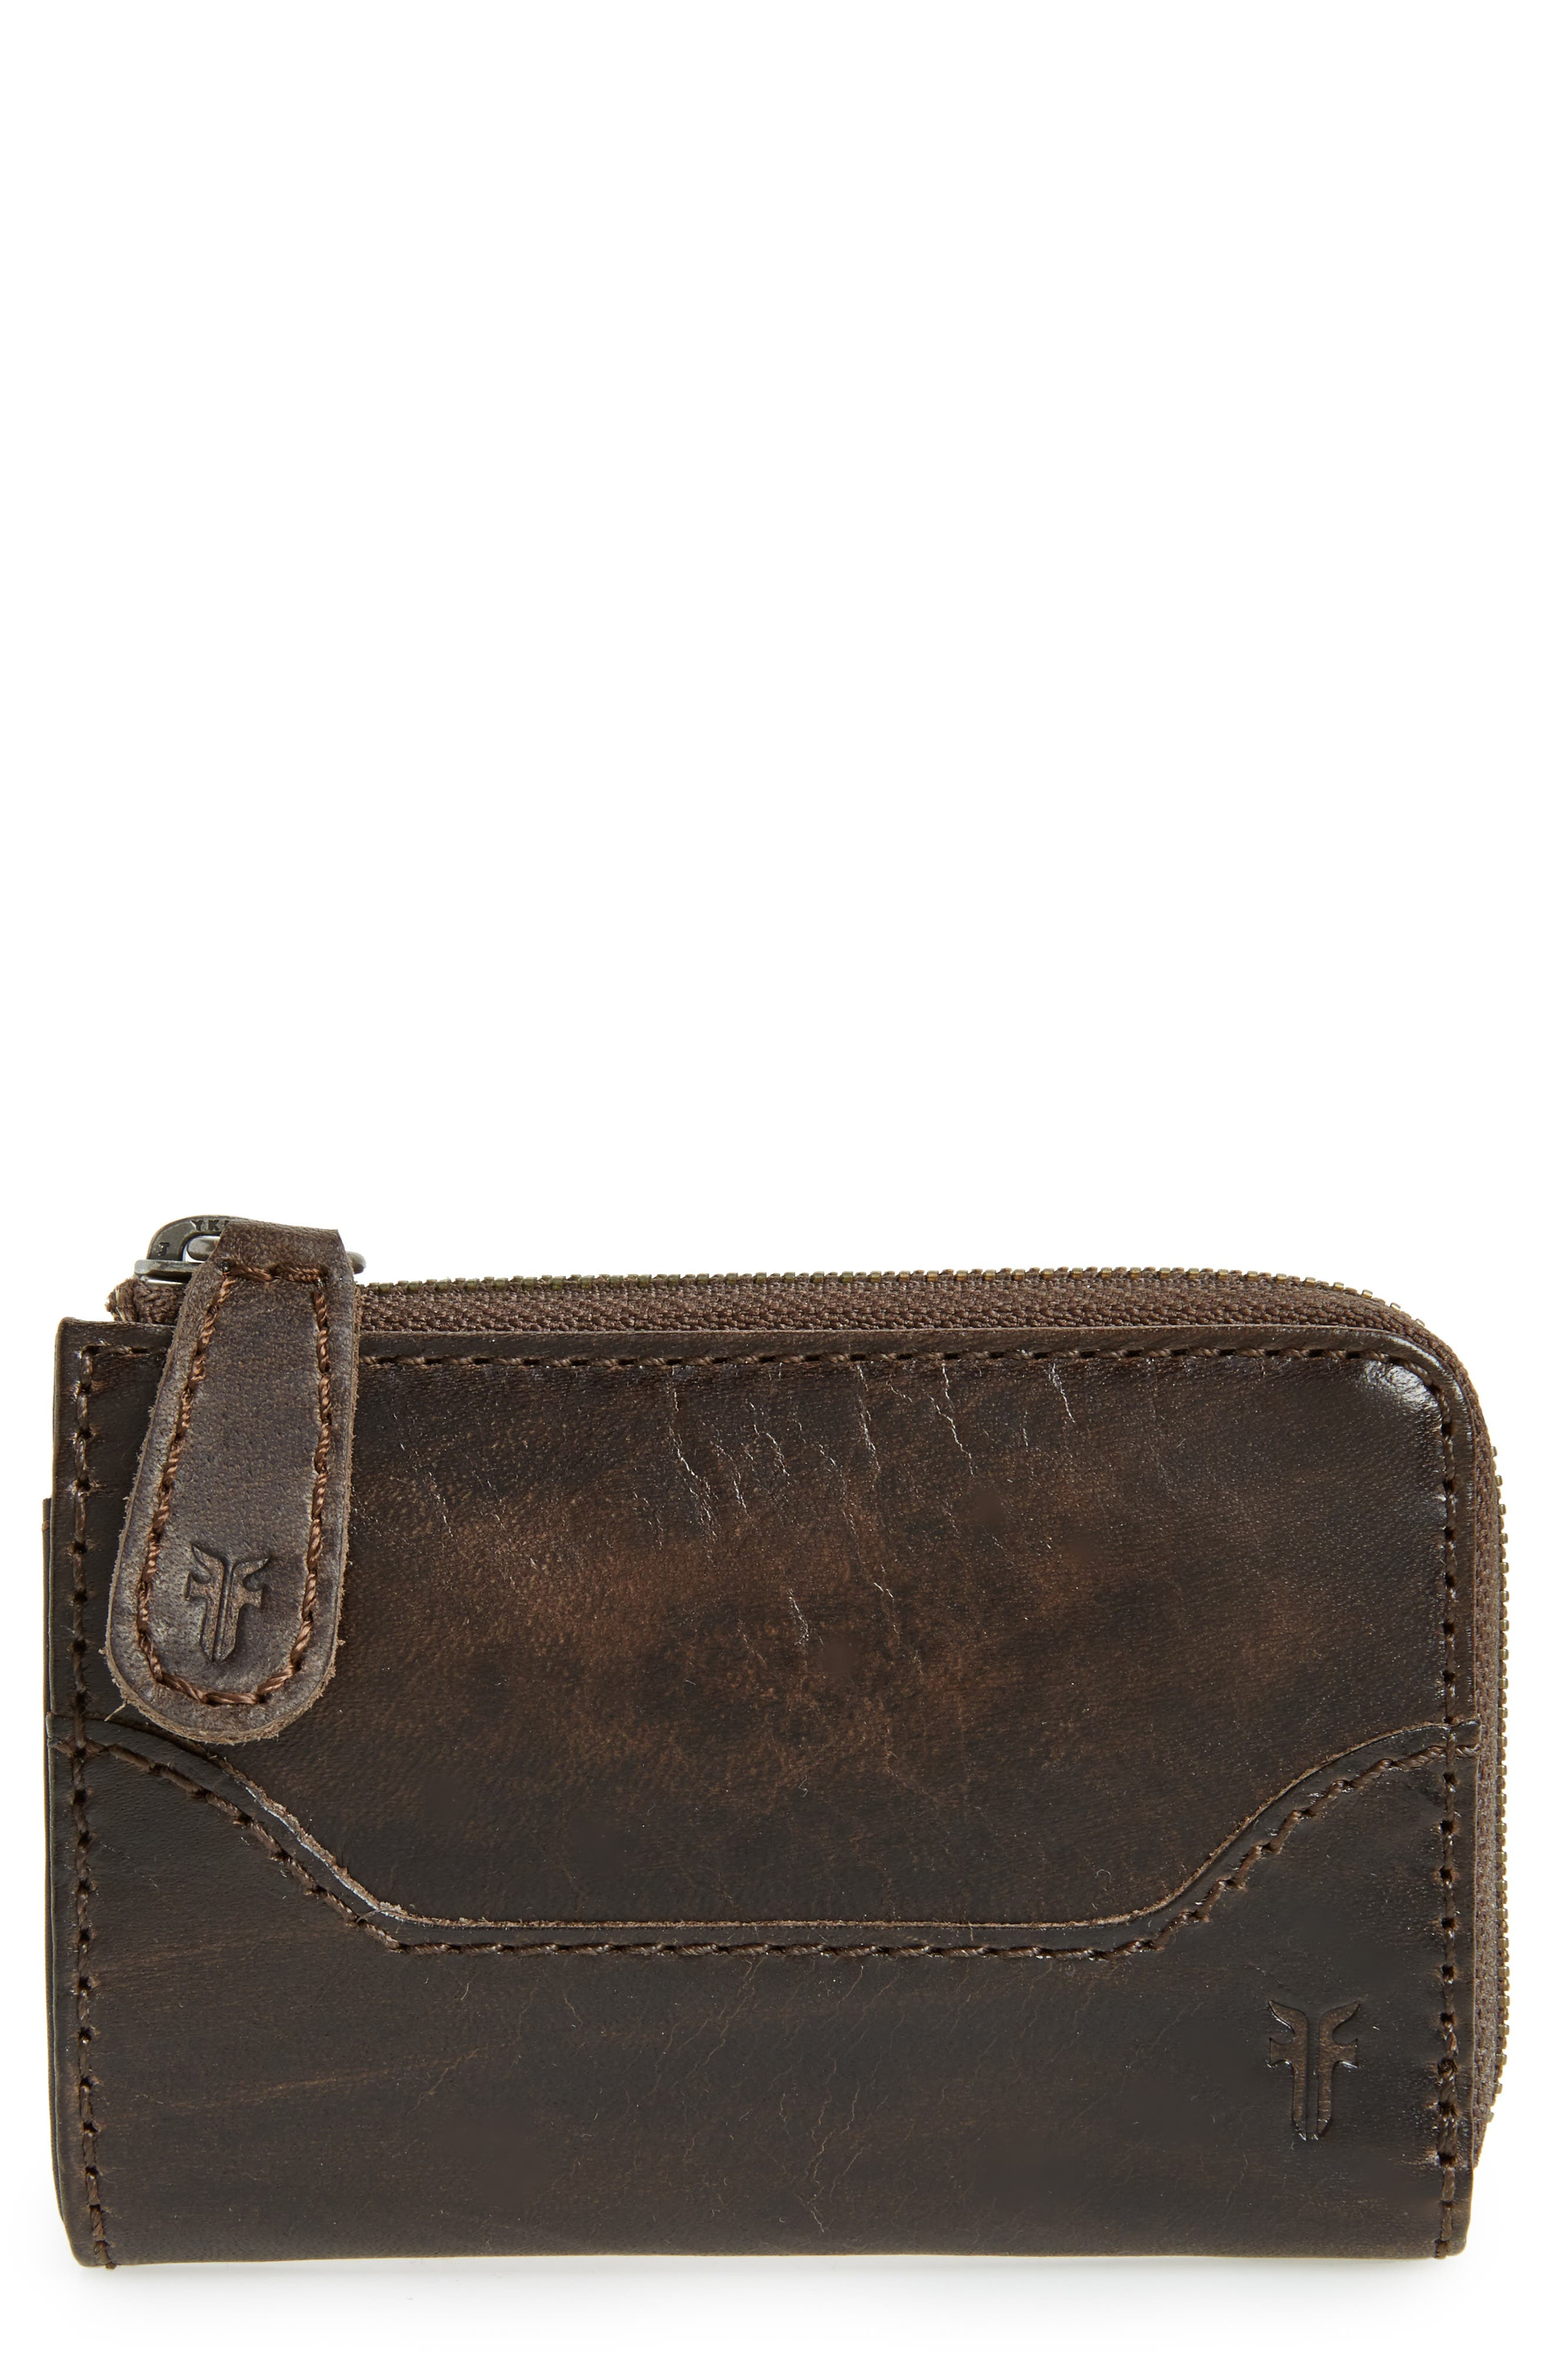 Frye Small Melissa Leather Zip Wallet